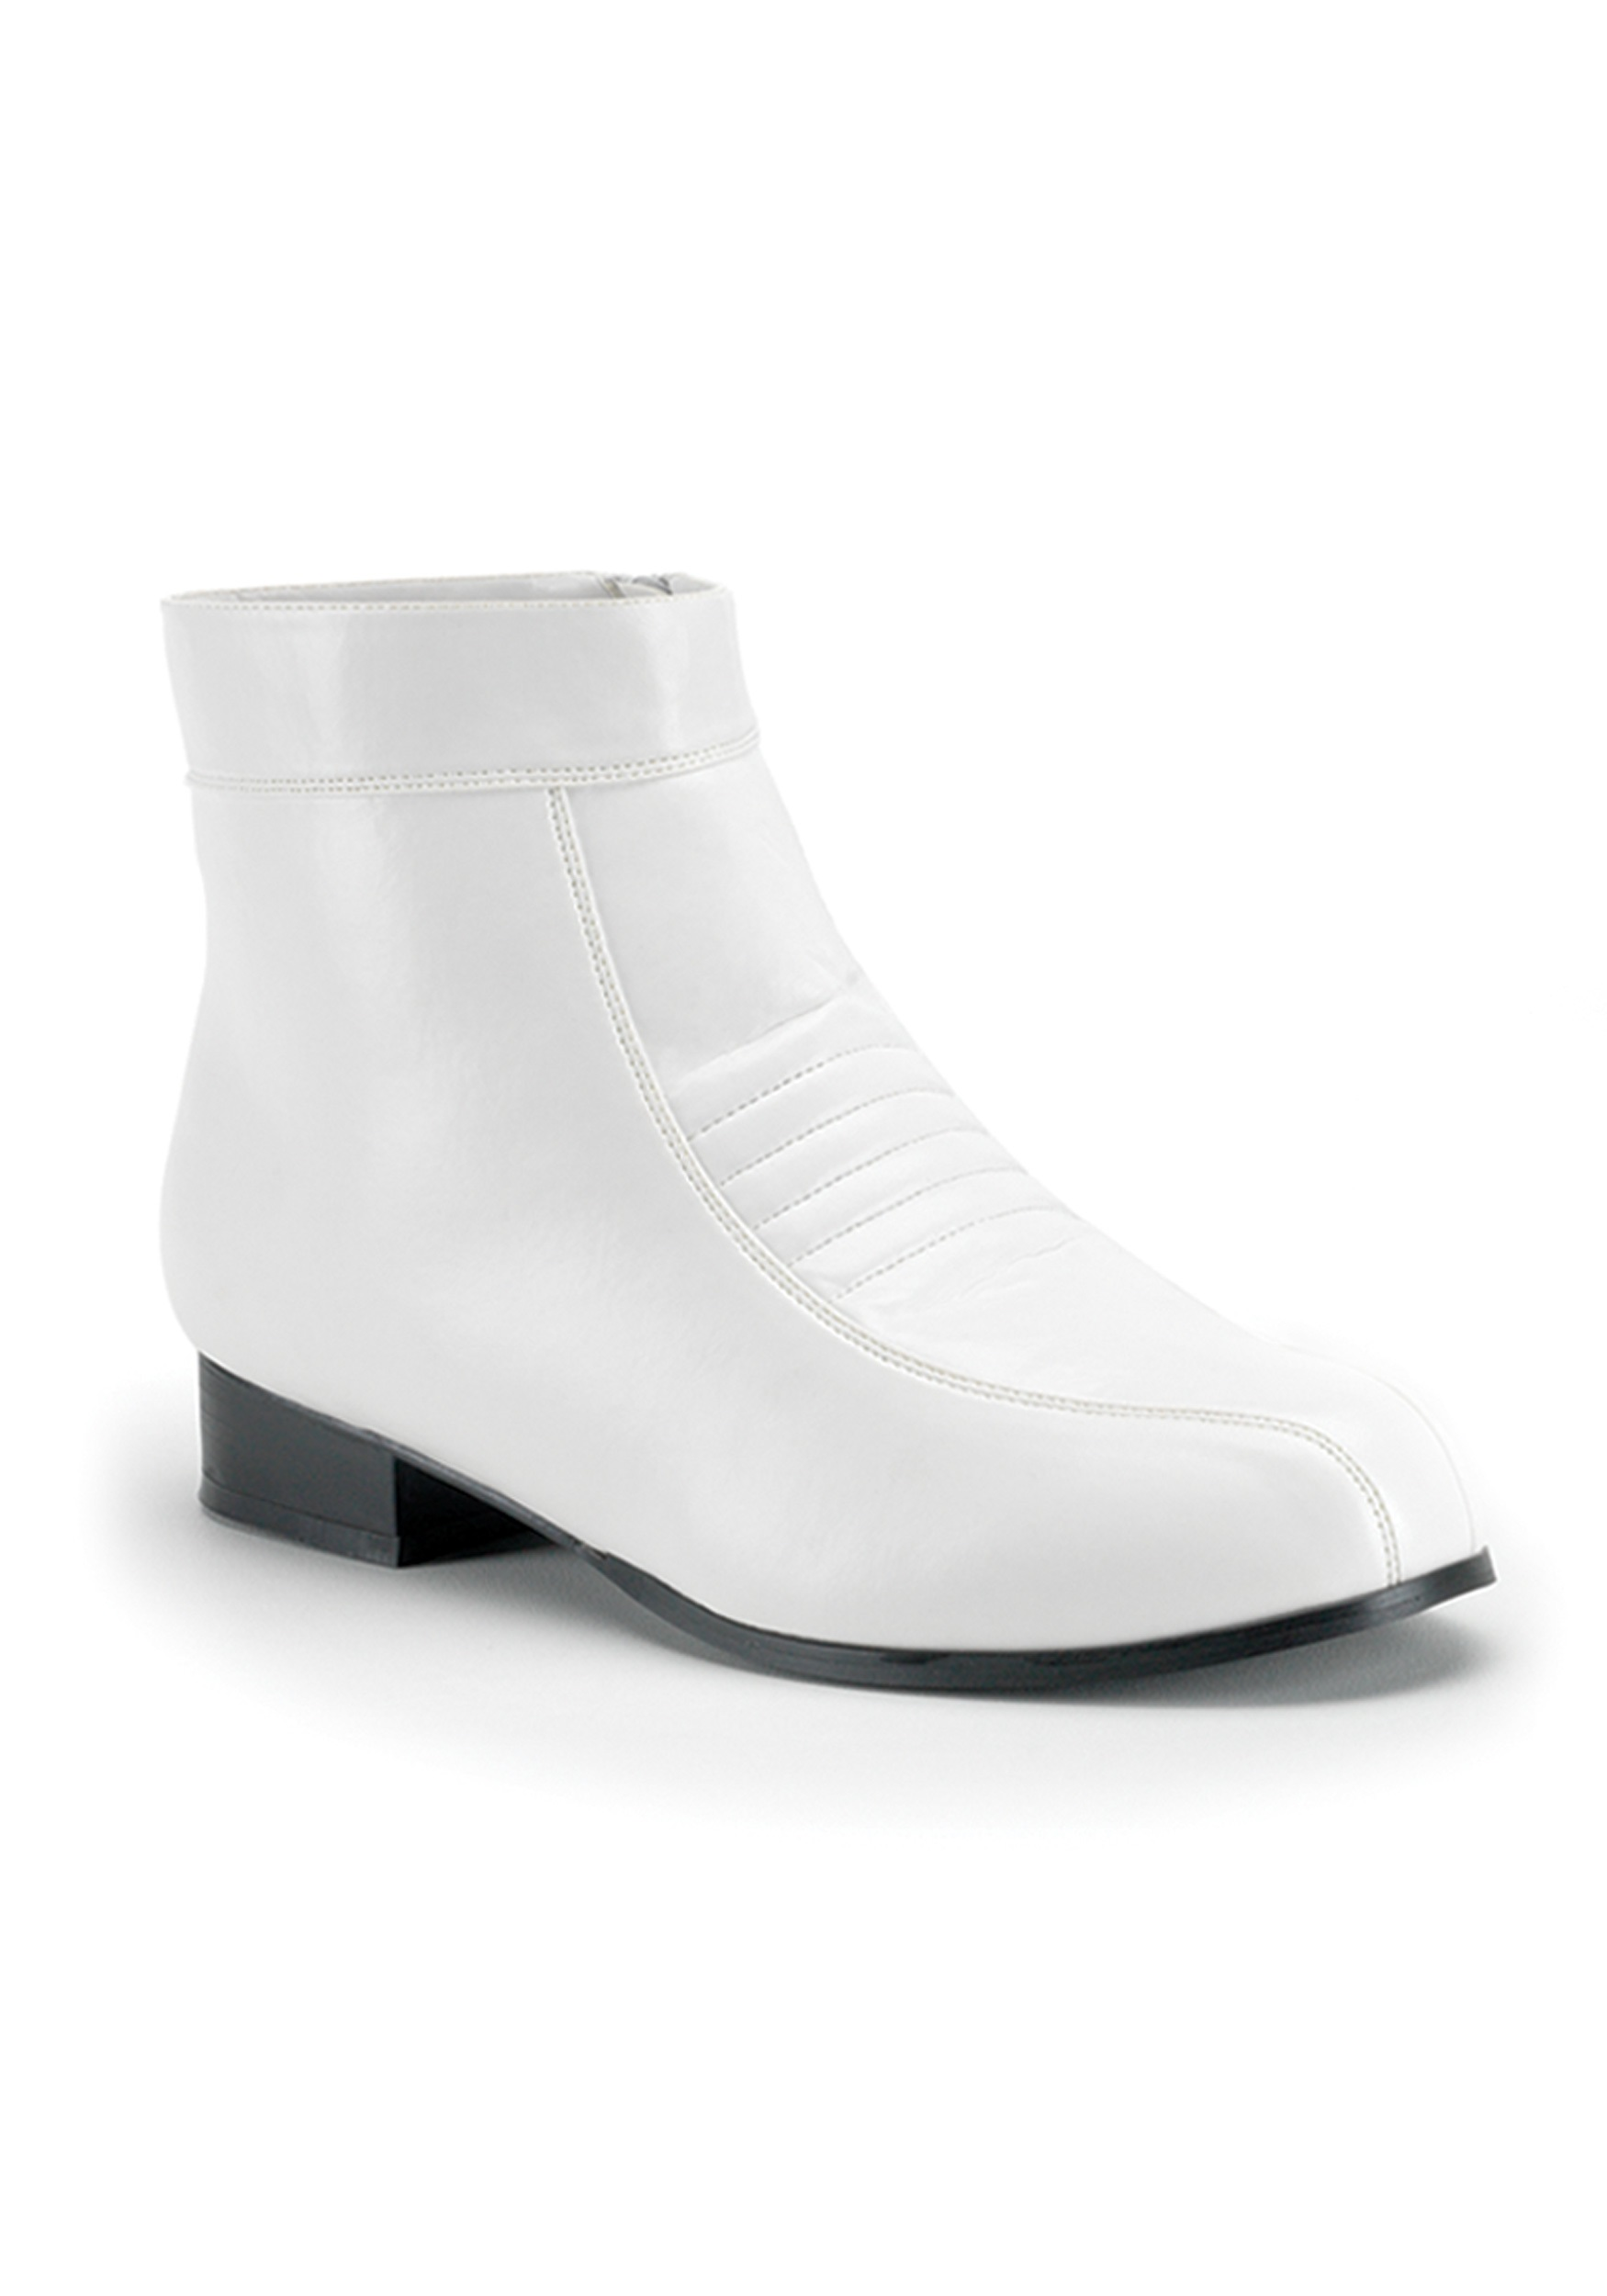 Stormtrooper Boots White Mens Costume Boots